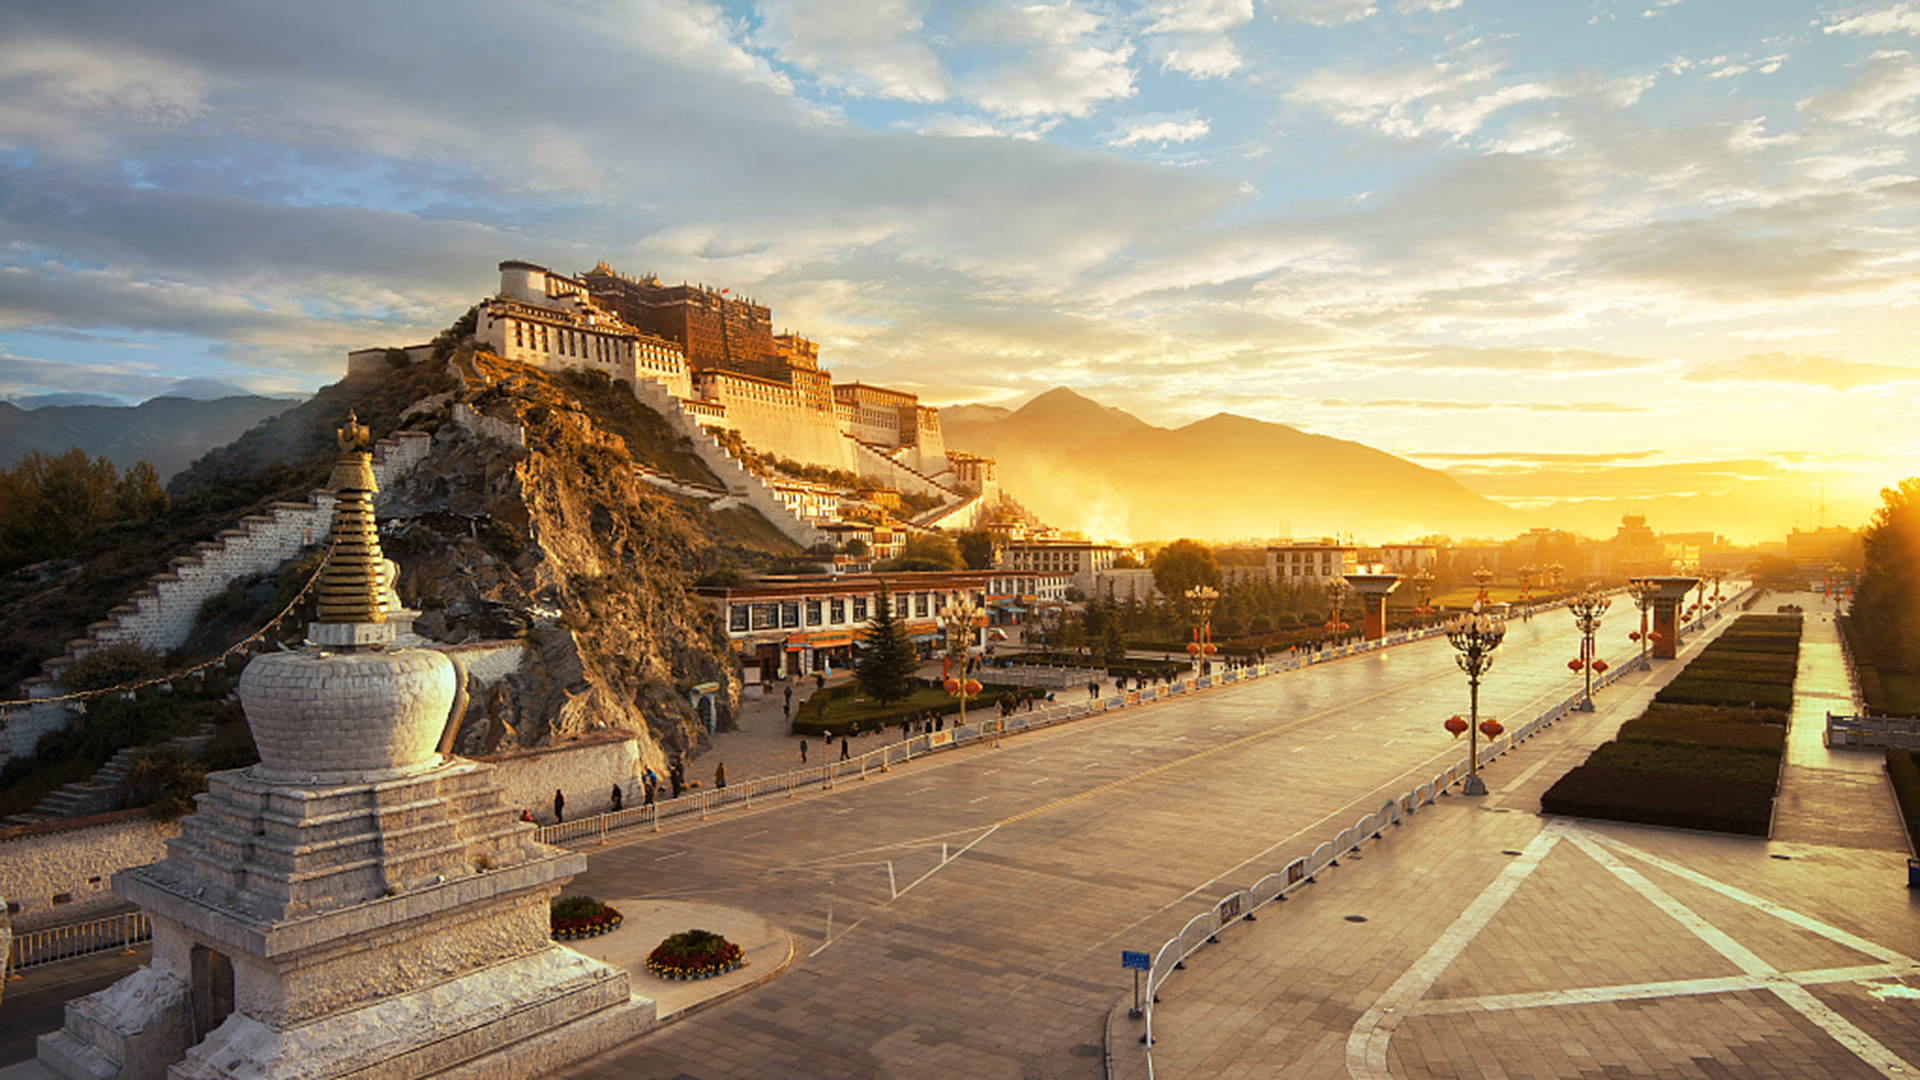 Tibet builds, upgrades 43,000 km of rural roads in 5 yrs